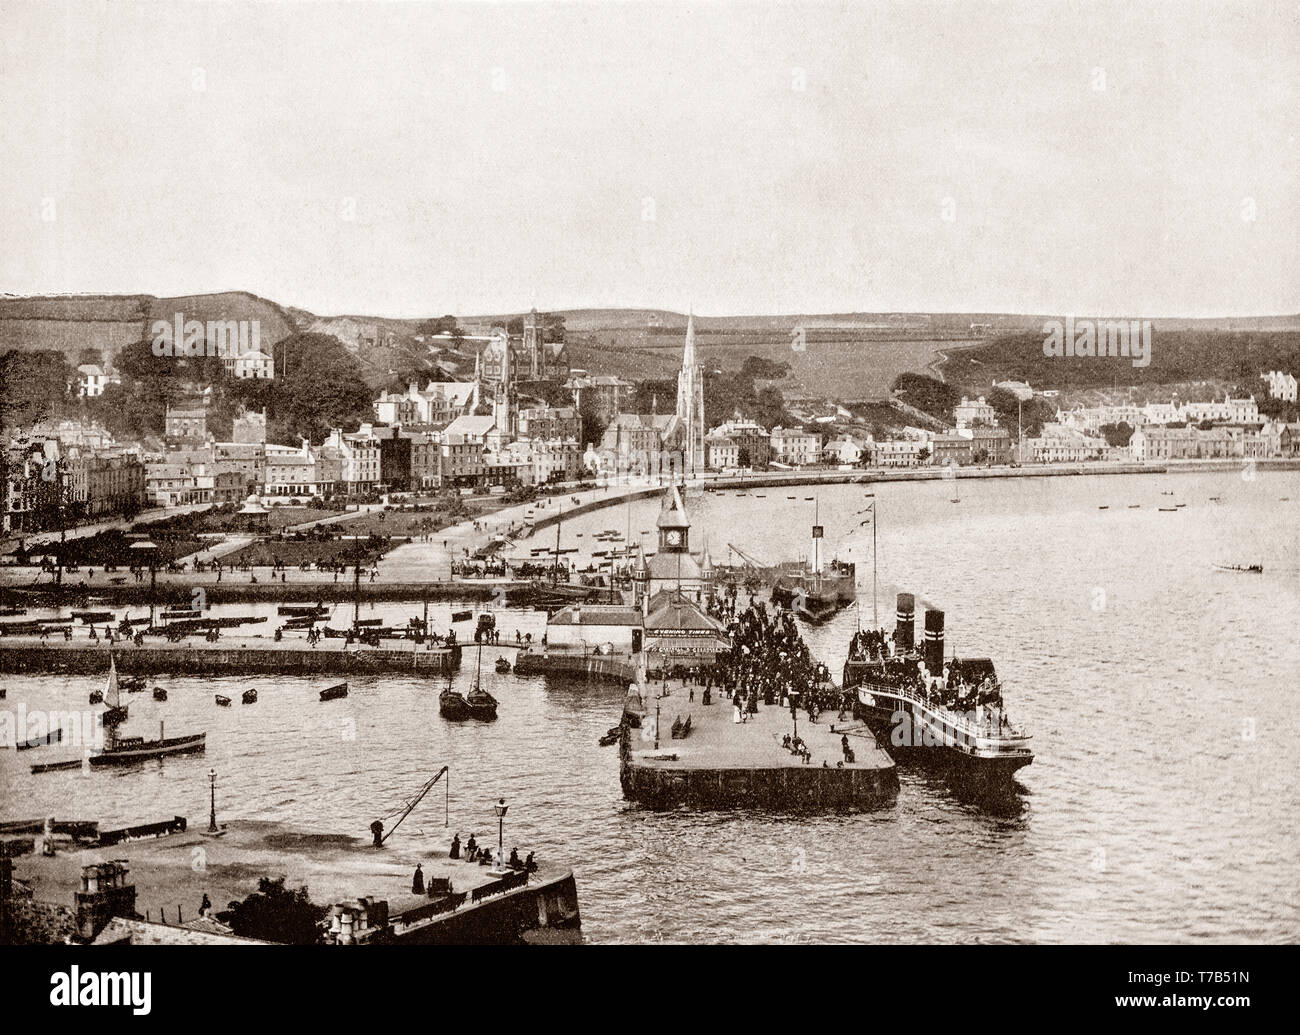 A late 19th Century view of Rothesay, principal town on the Isle of Bute in the Firth of Clyde, Argyll and Bute, Scotland. It developed as a popular tourist destination for Glaswegians going 'doon the watter'.  Rothesay was also the location of one of Scotland's hydropathic establishments during the 19th century boom years of the Hydropathy movement. It also had an electric tramway - the Rothesay and Ettrick Bay Light Railway - which stretched across the island to one of its largest beaches. - Stock Image